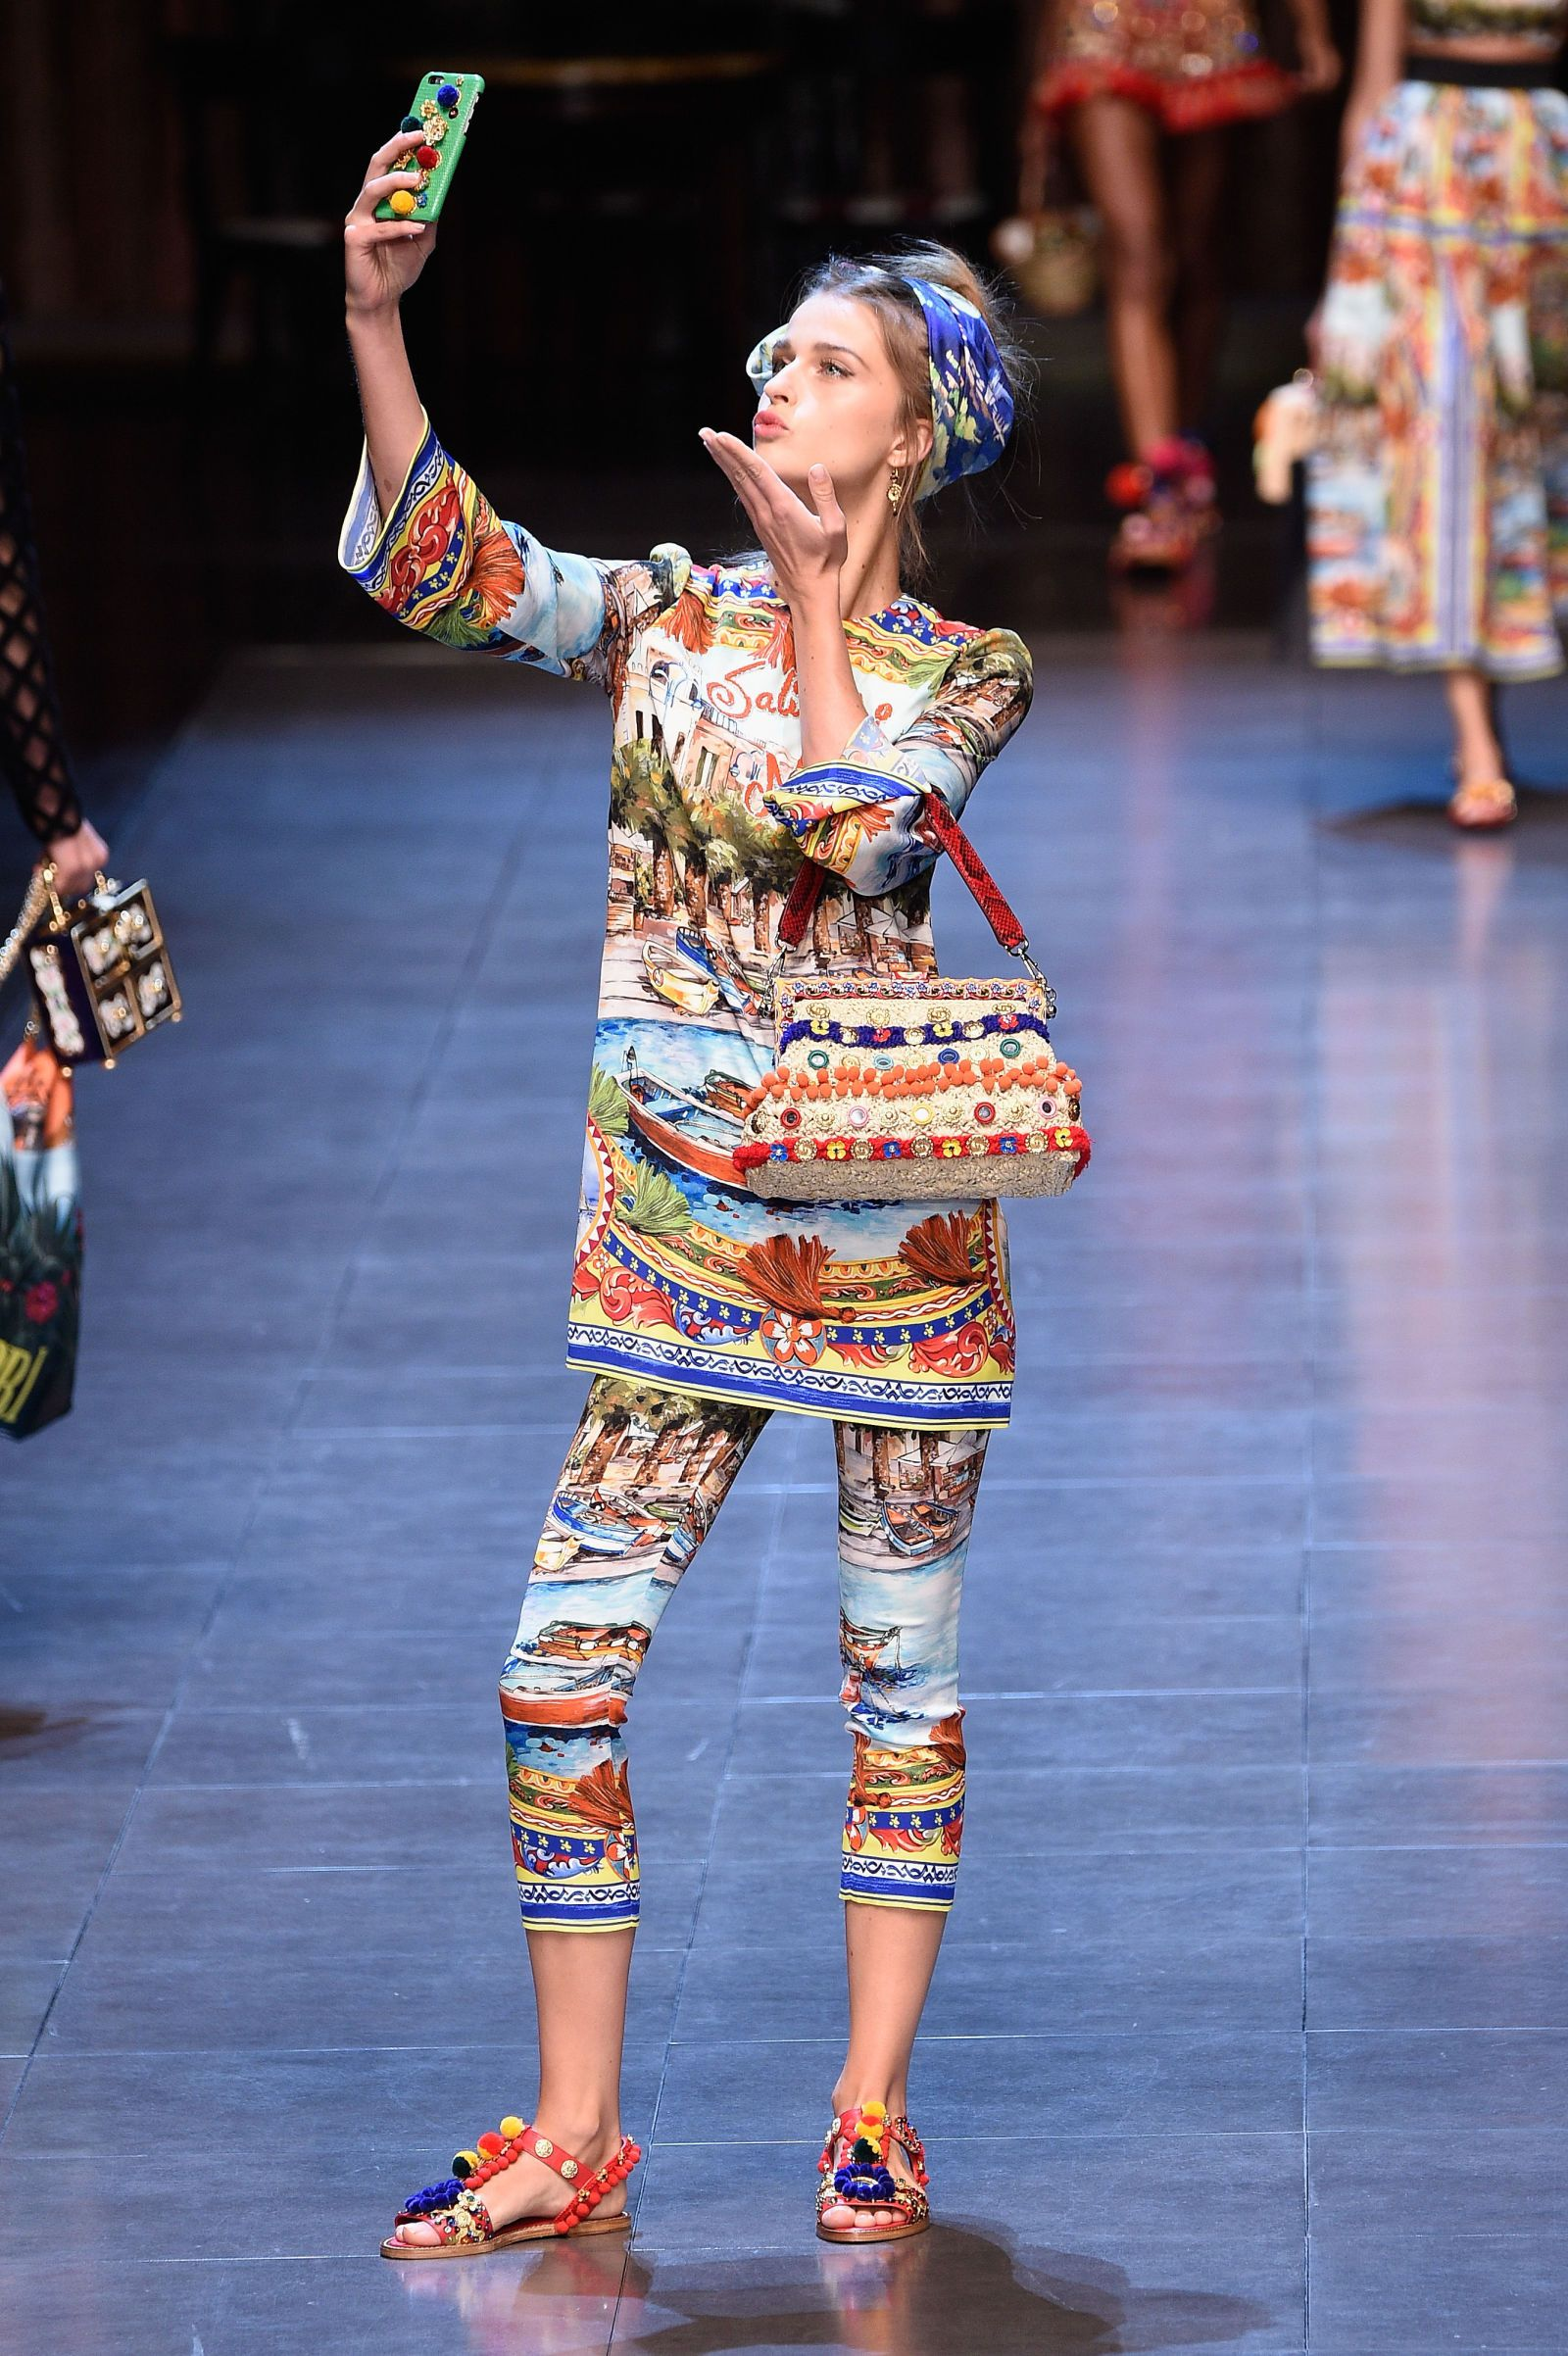 The Funniest Selfies at the Dolce Gabbana Fashion Show